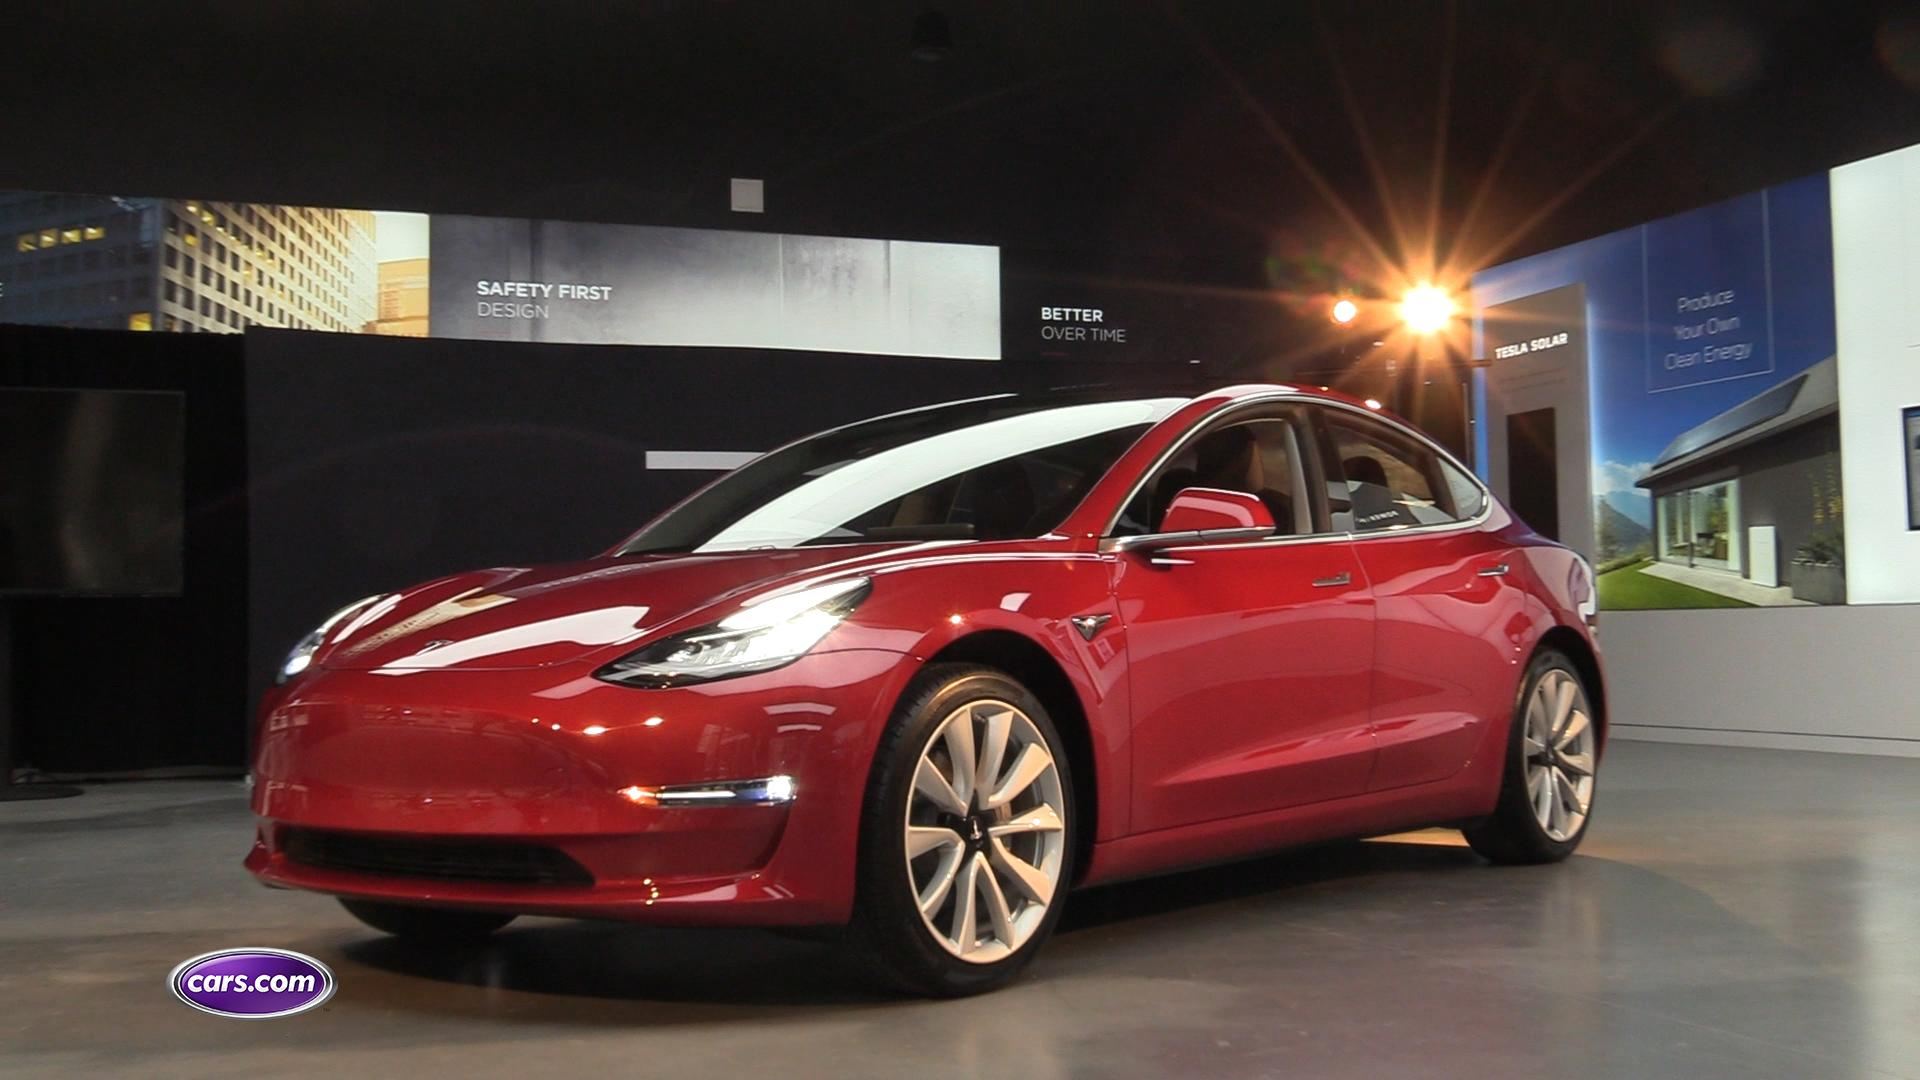 Video: We Take a Deep Dive Into the Tesla Model 3